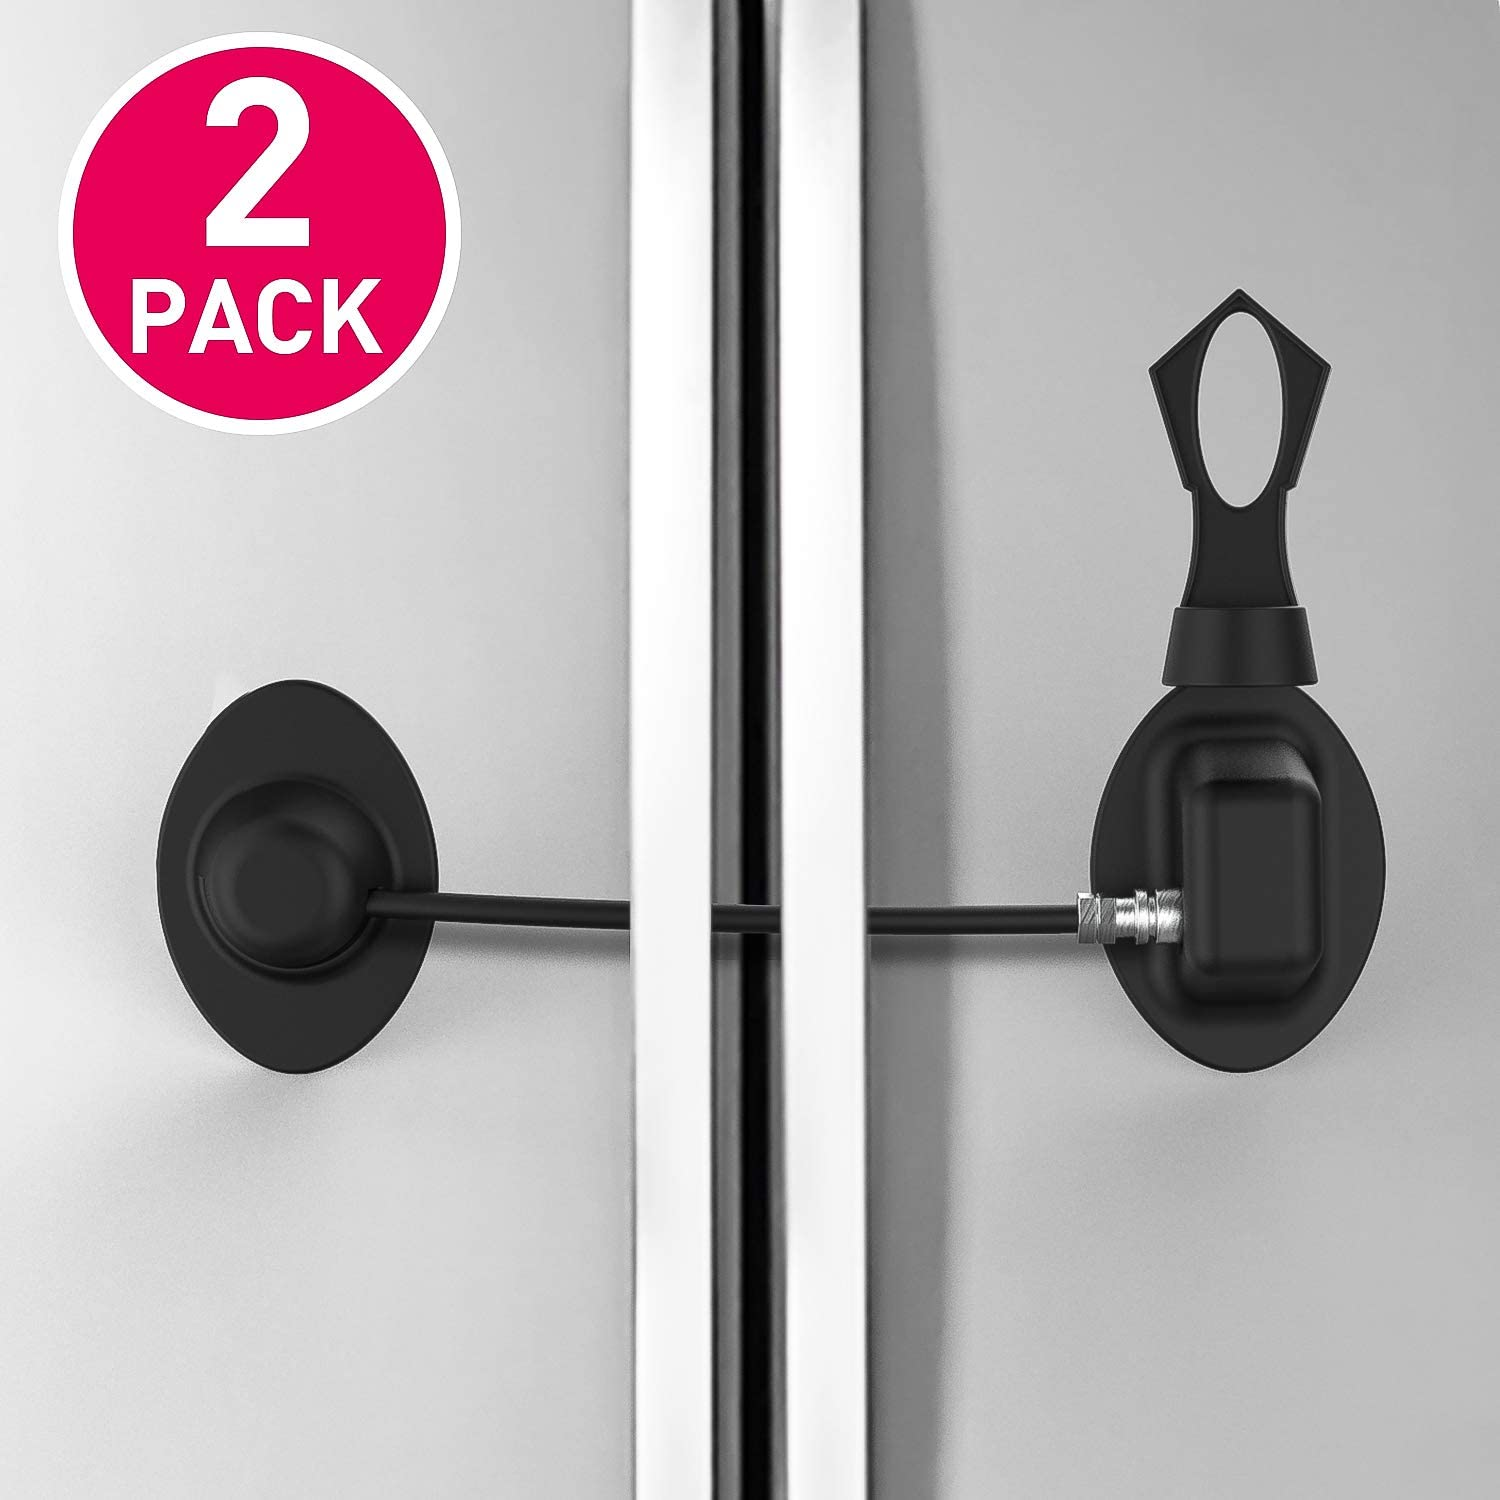 Refrigerator Lock, Childproof Fridge Lock with Magnetic- Strong 3M Adhesives and Cable, Super Convenience (Black-2PCS)